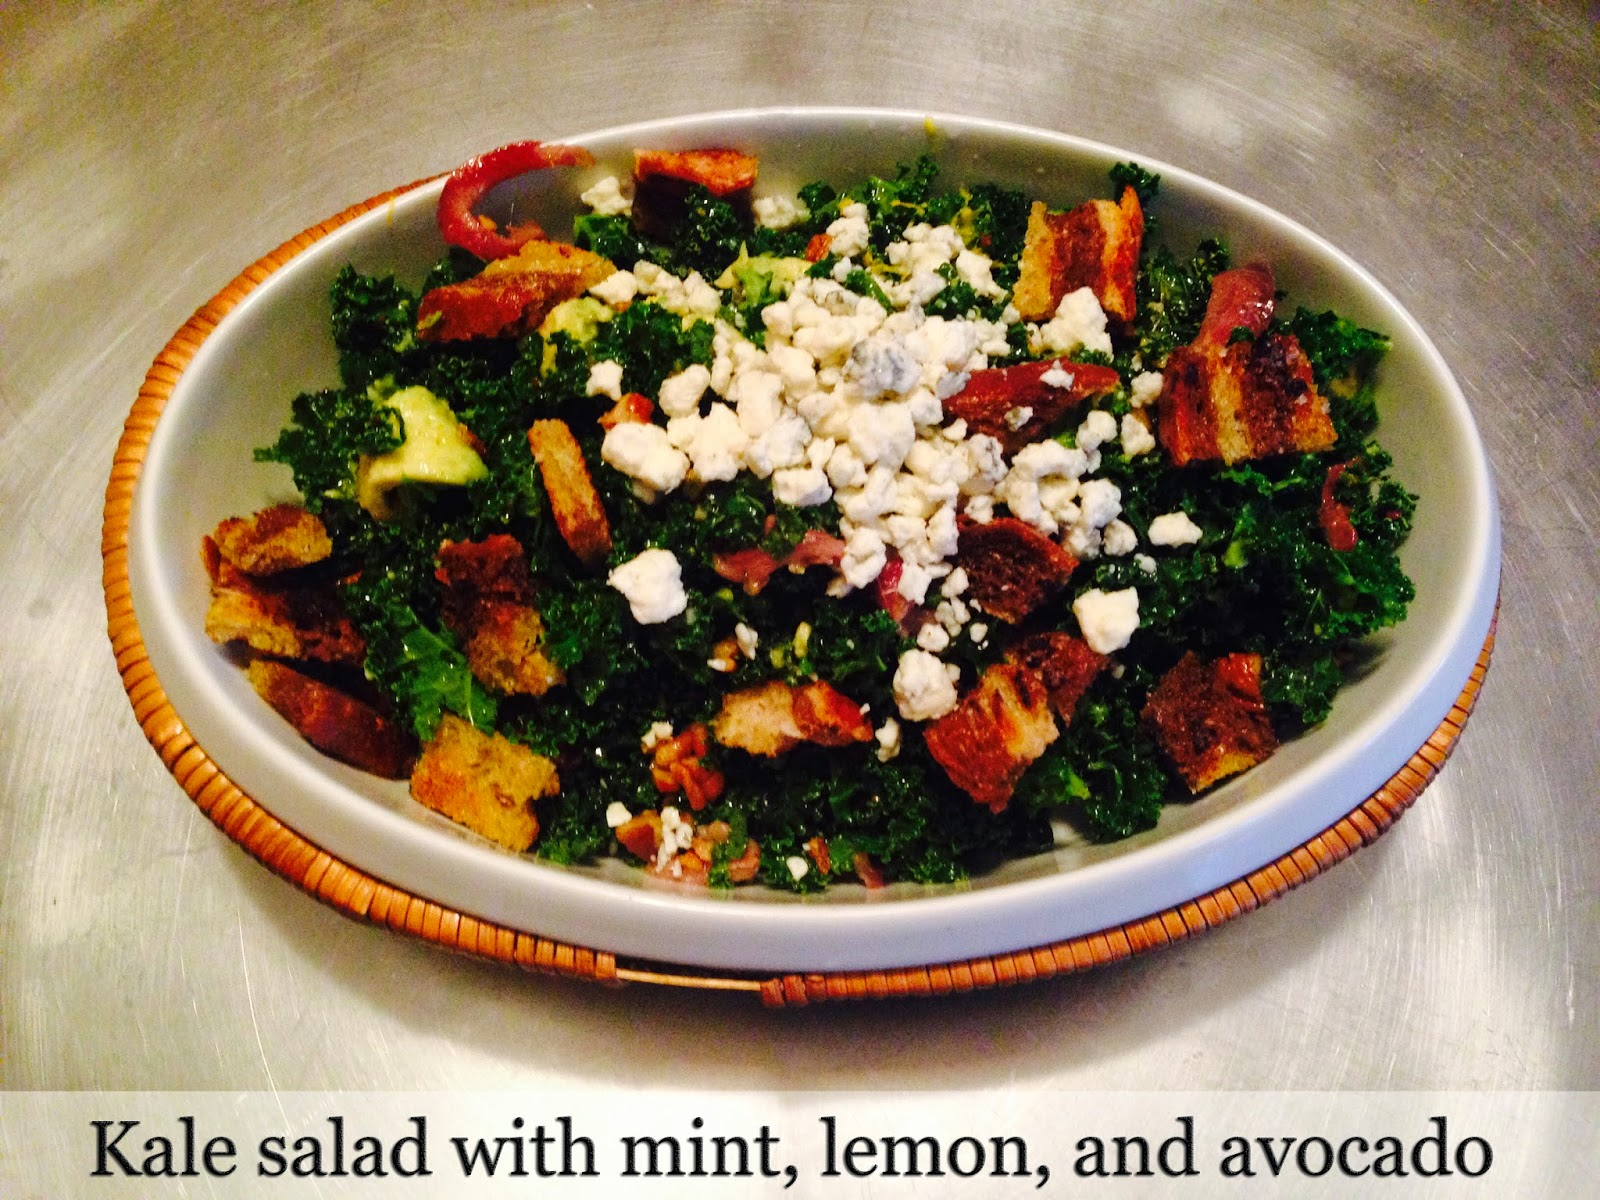 Buzzfeed Food - Food blogger Kale Salad